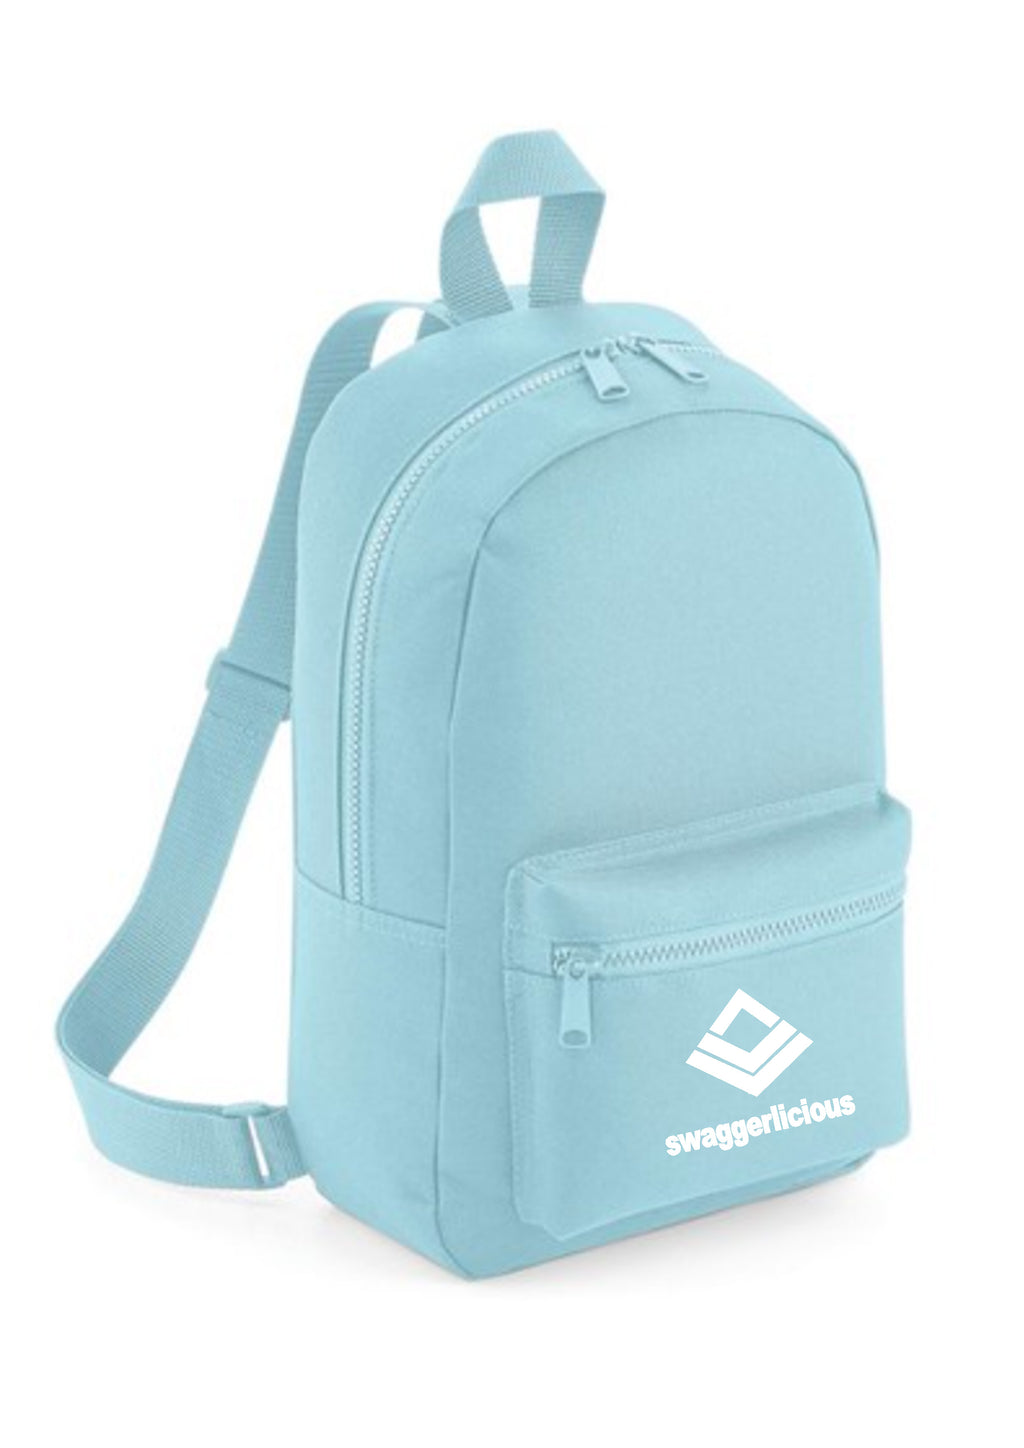 Swaggerlicious Classic Powder Blue Mini Backpack with White Logo - swaggerlicious-clothing.com